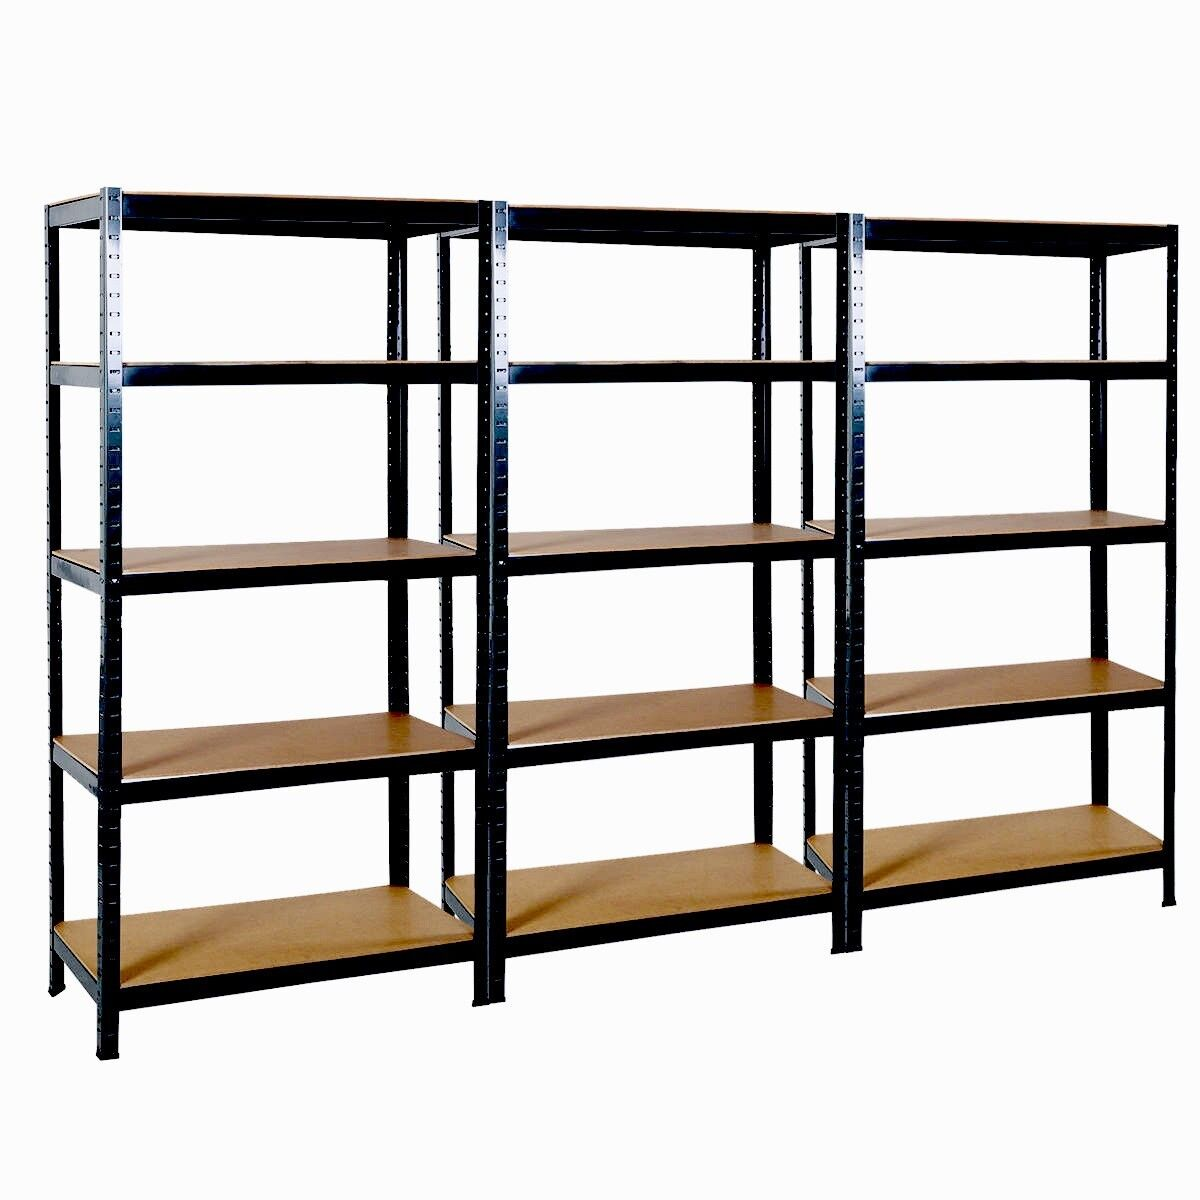 3 x 5 tier boltless industrial heavy duty racking shelving for Garden shed 3x5